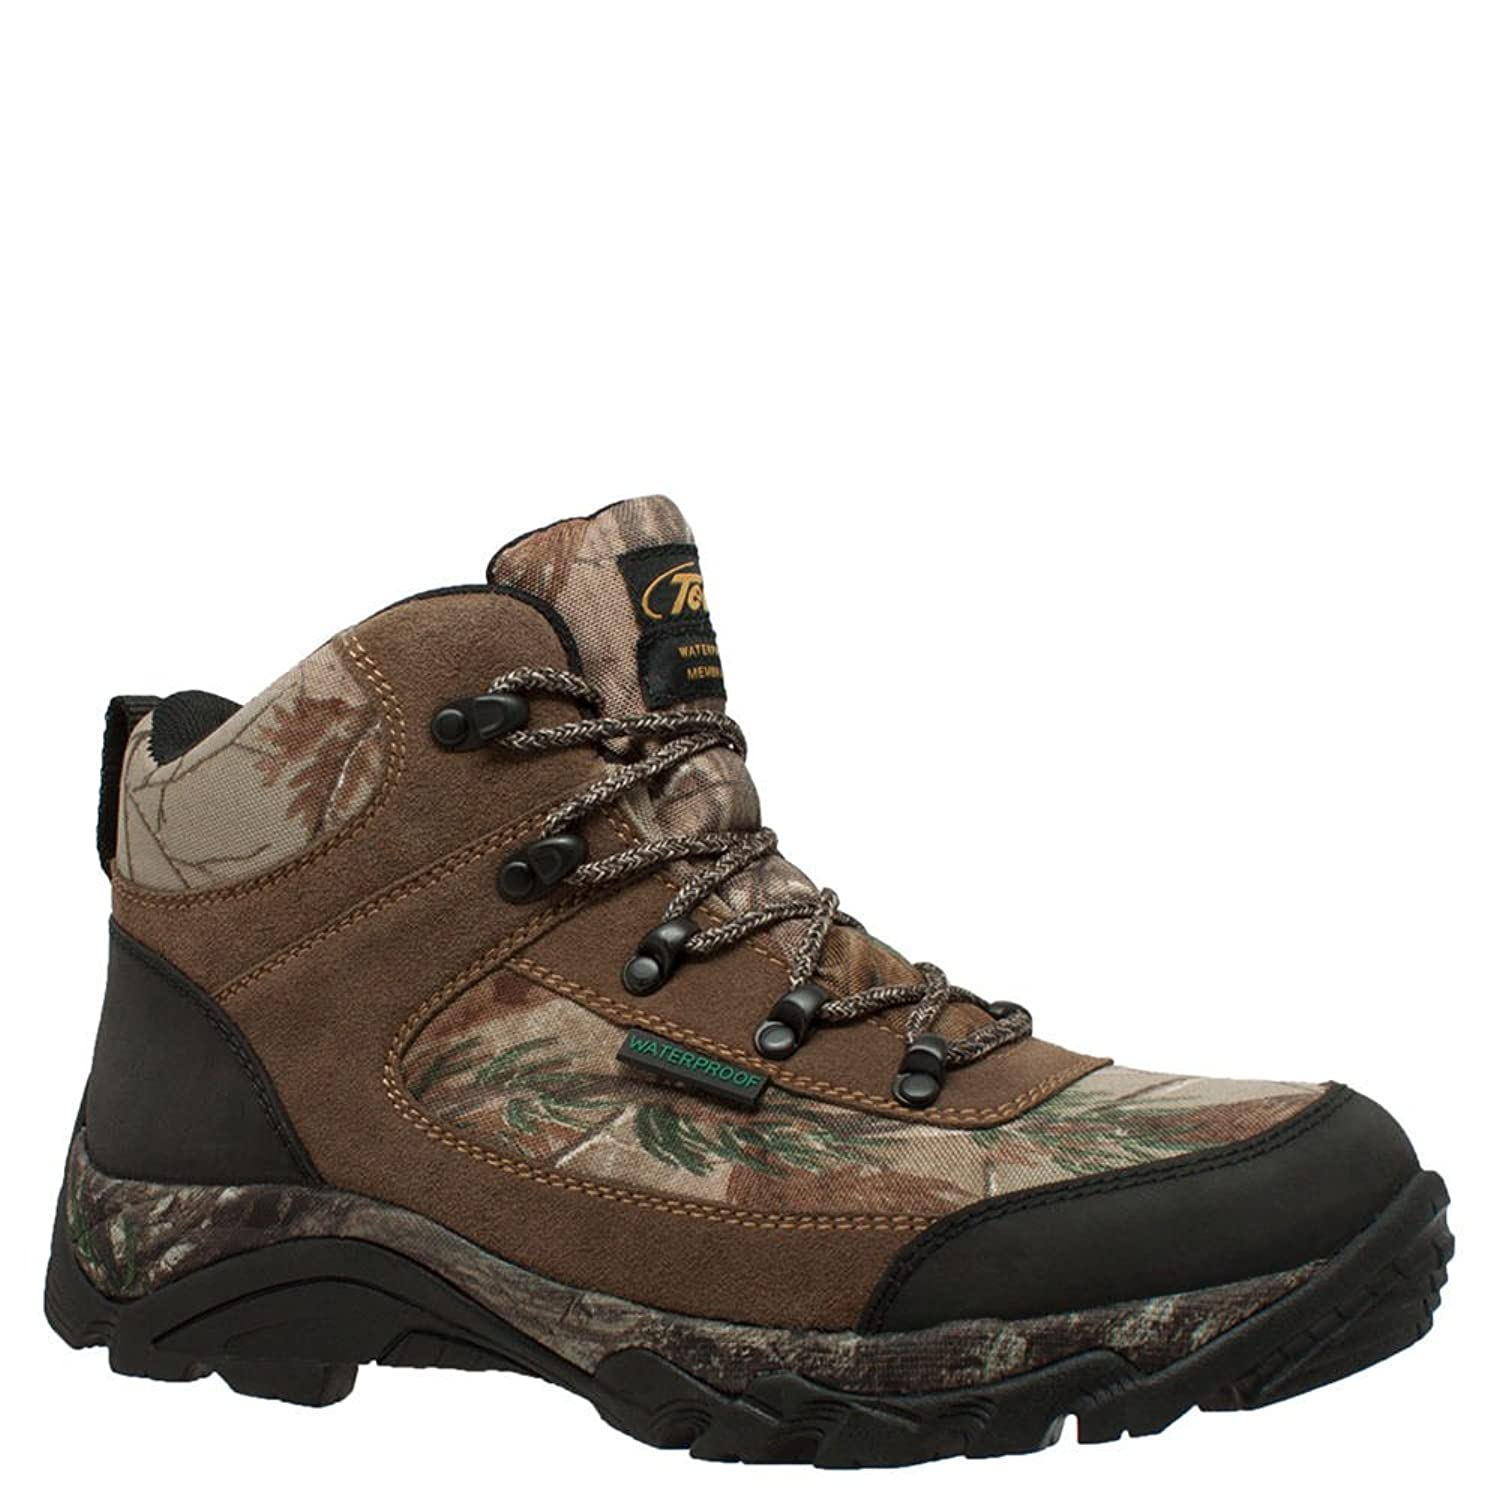 "AdTec Men's 9643 6"" Waterproof Realtree 400G Camo Boot"